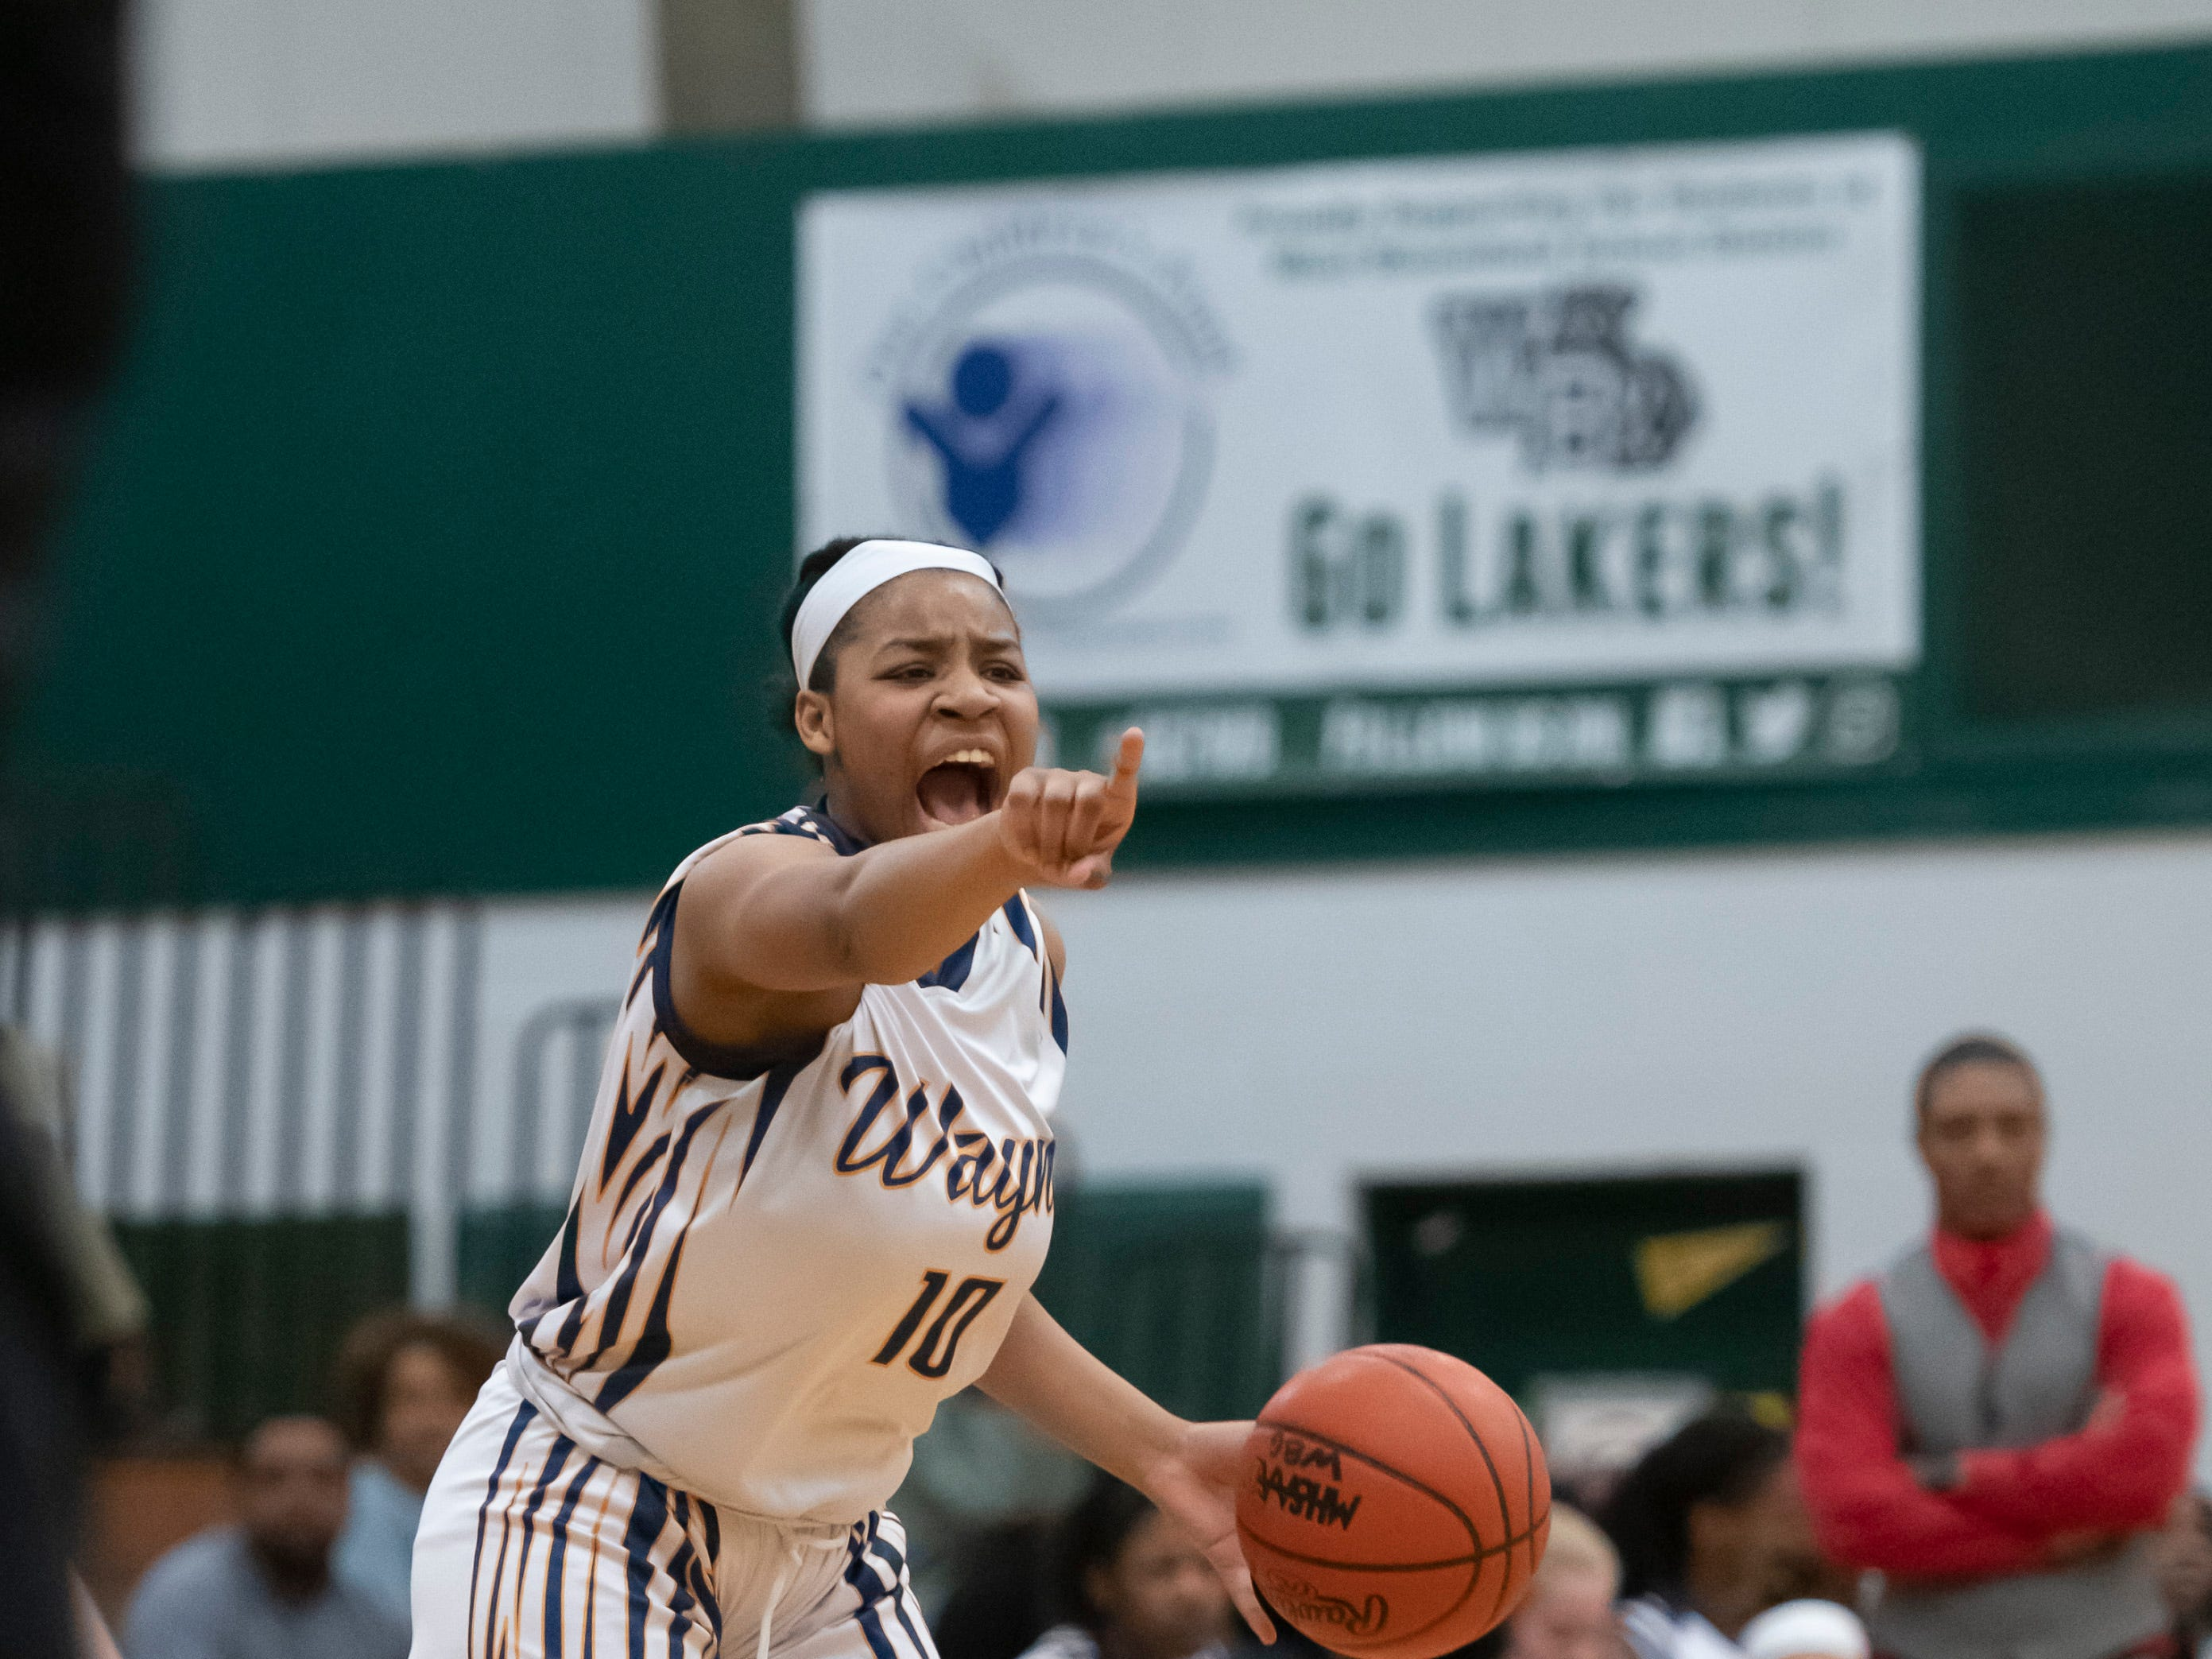 Wayne Memorial guard Jeanae Terry shouts out a play to her teammates during the first half.